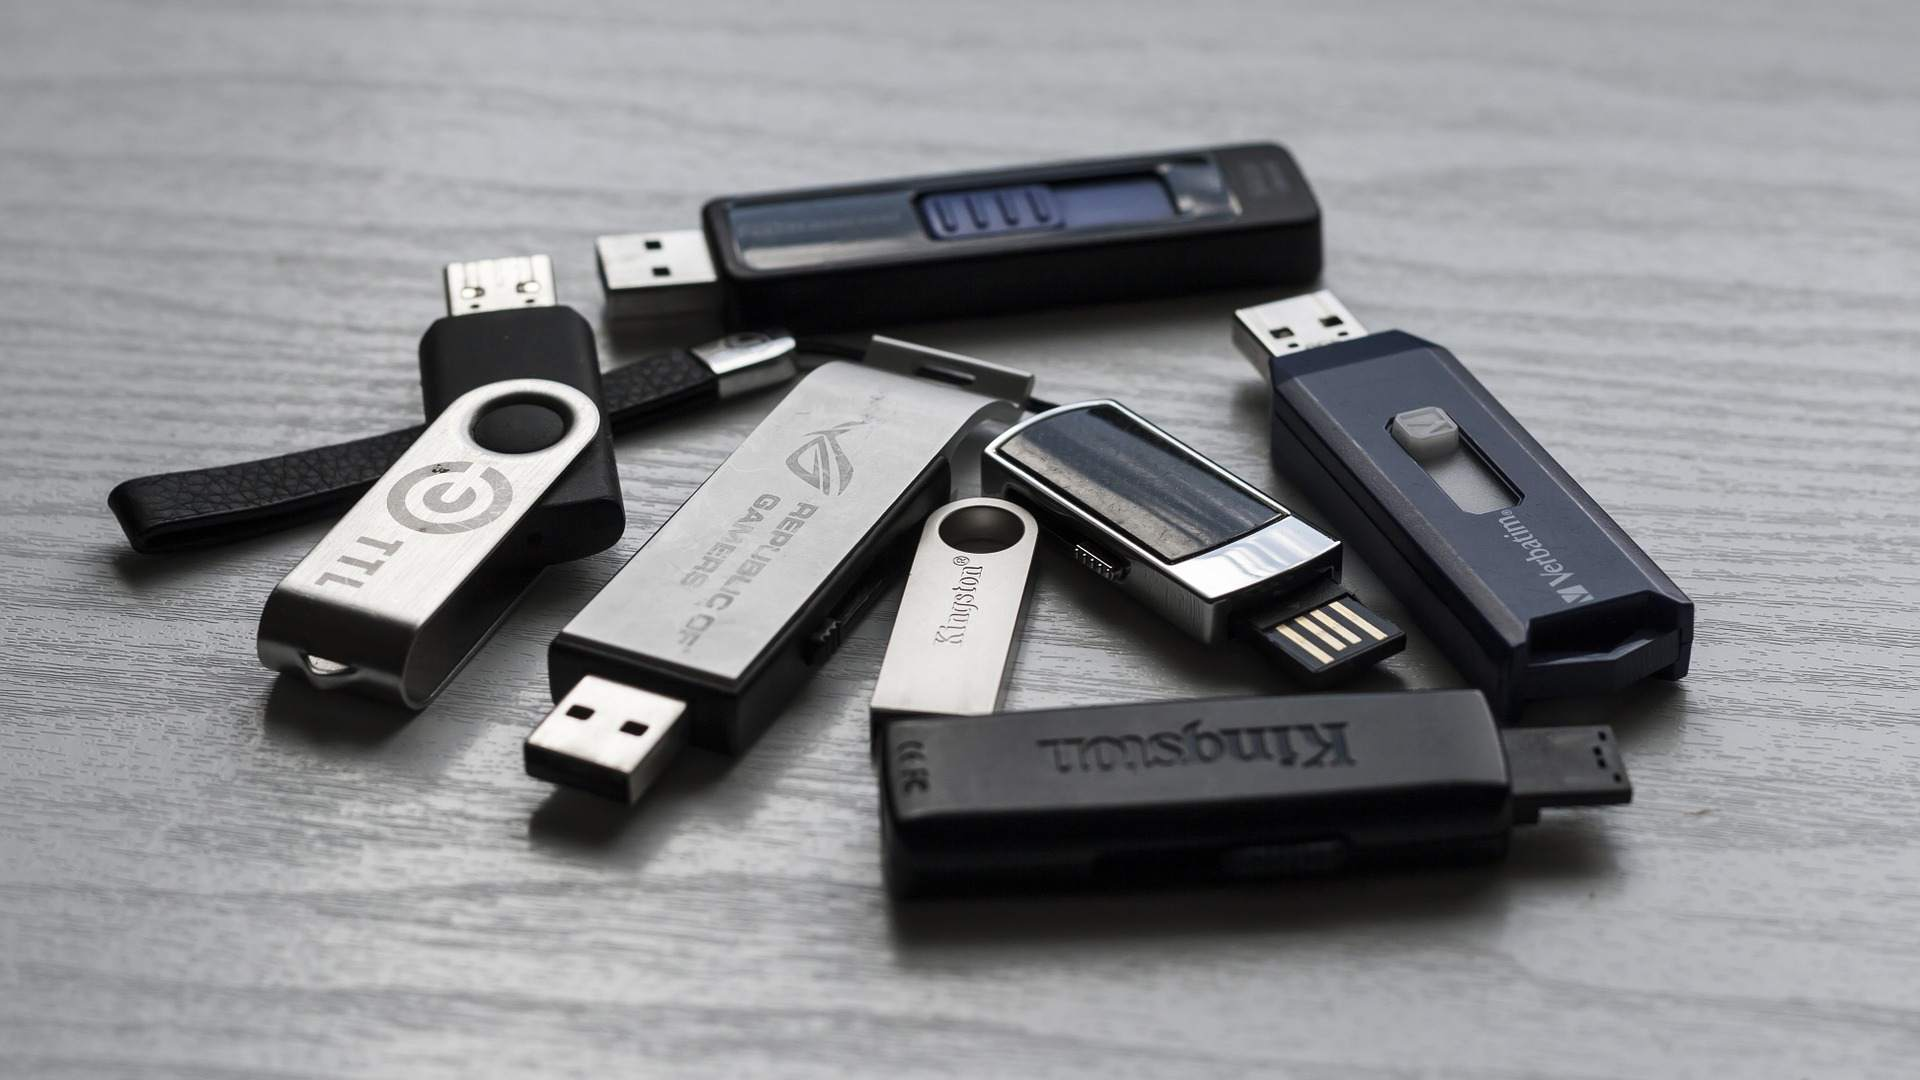 How to Select the Right USB Flash Drive